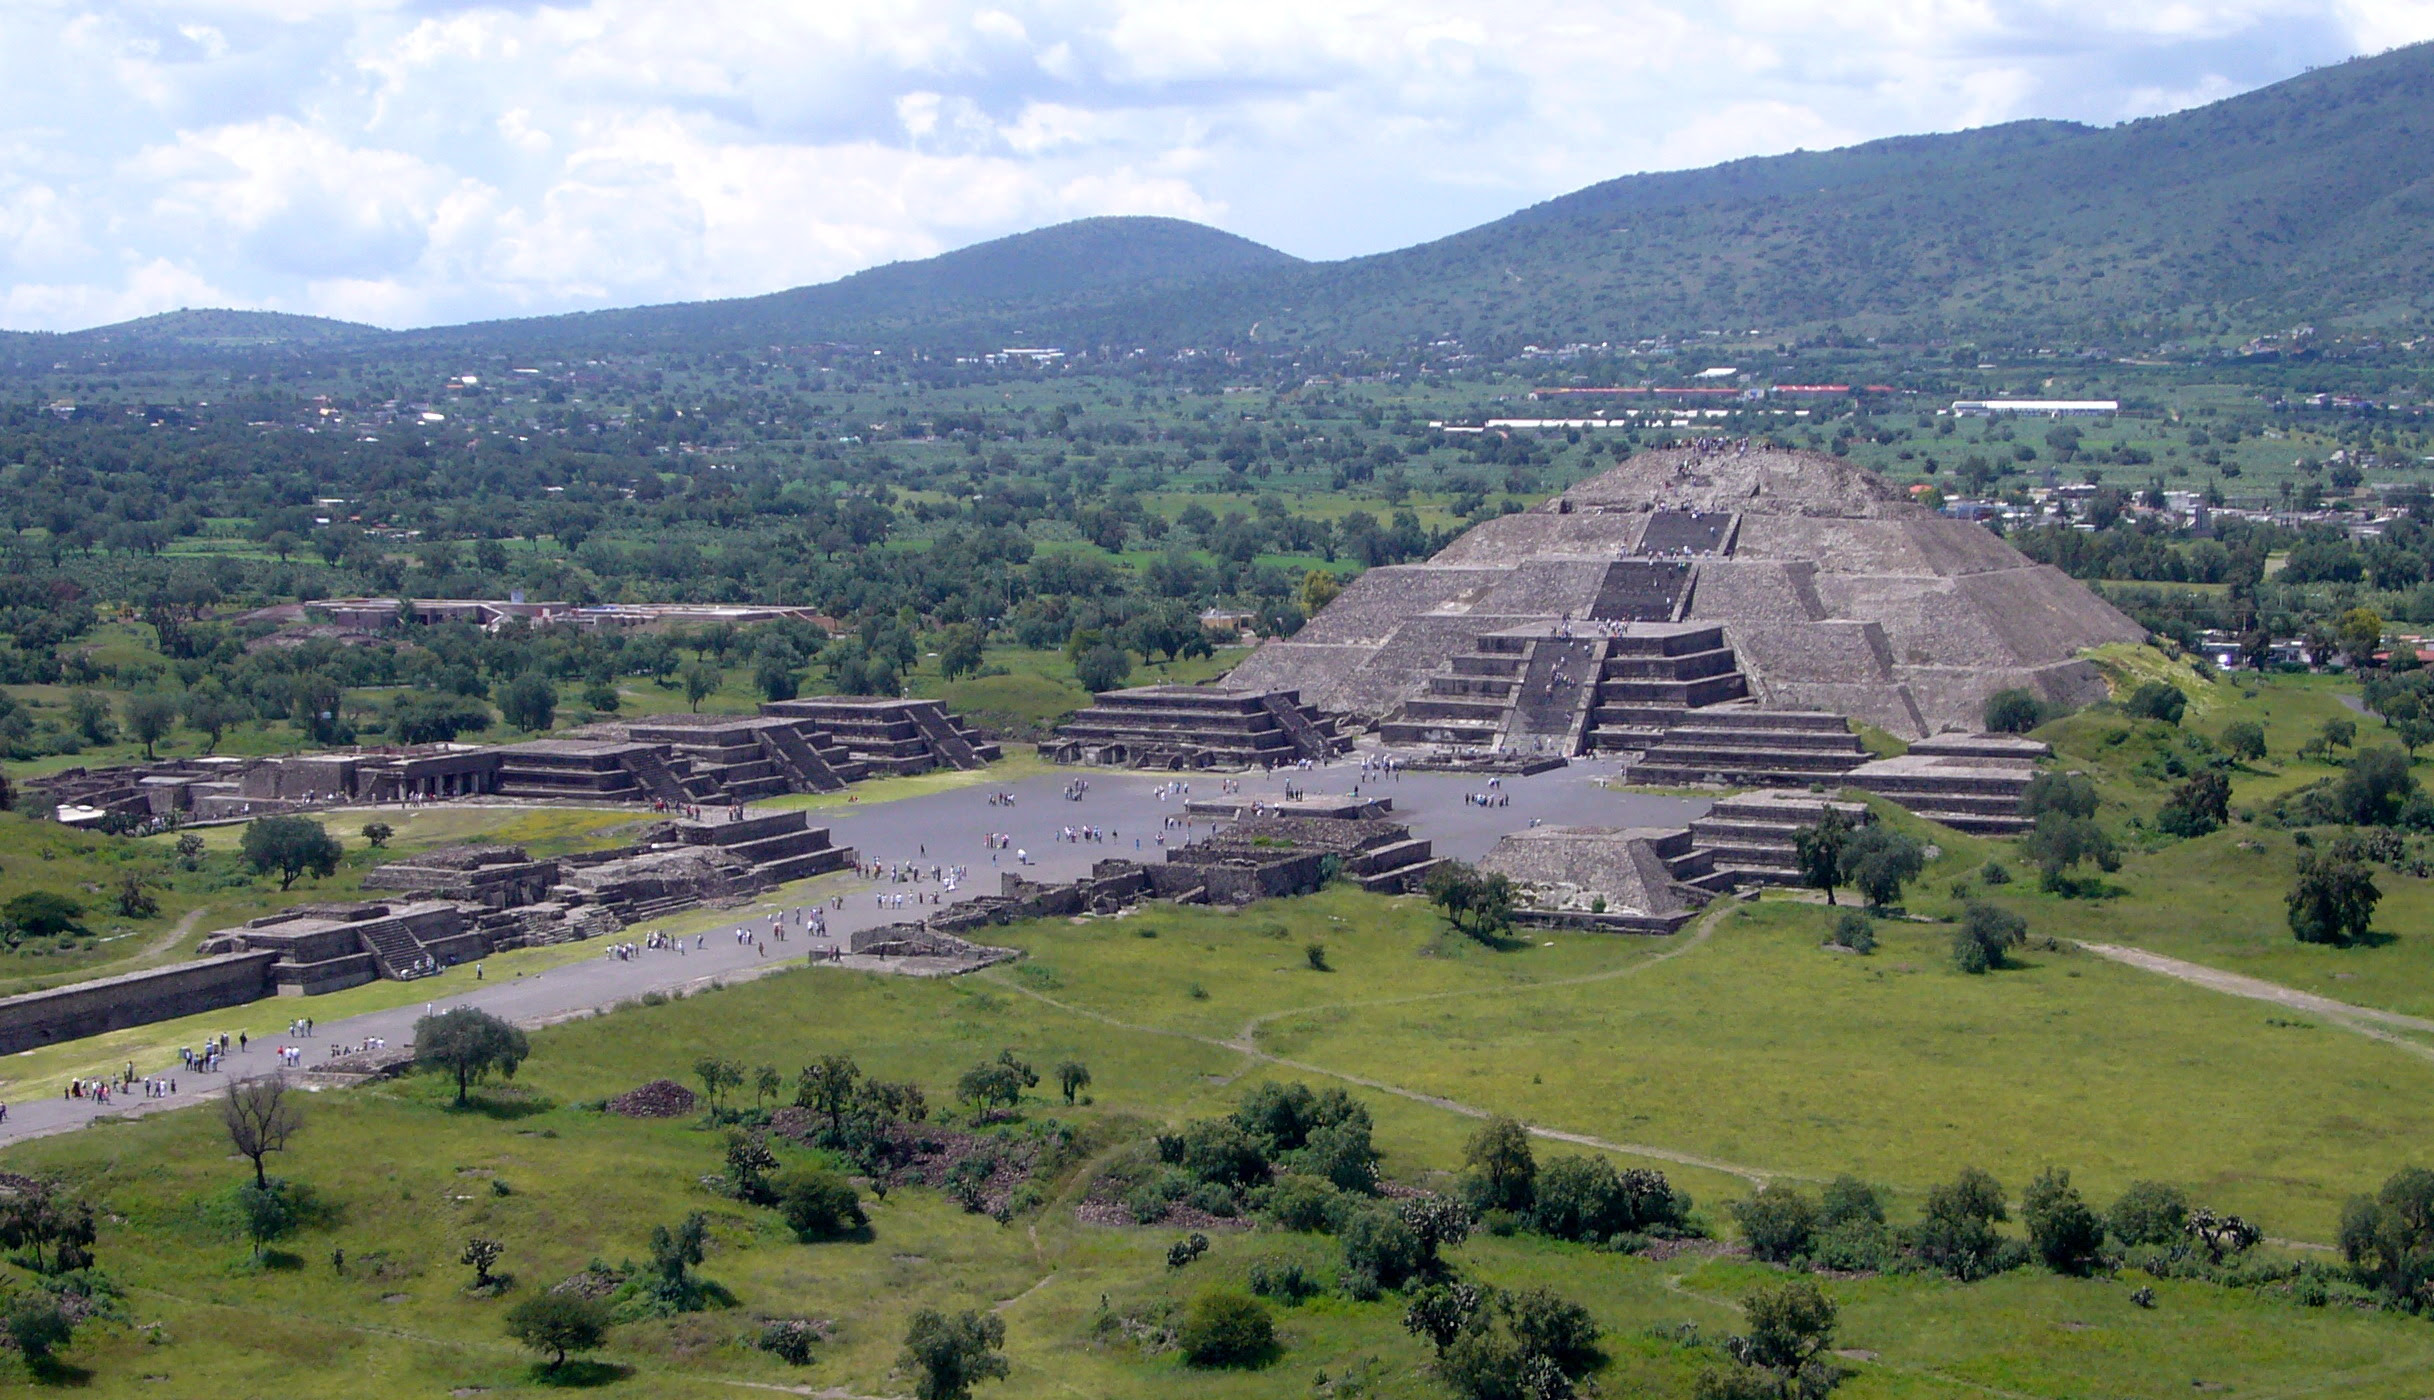 http://upload.wikimedia.org/wikipedia/commons/a/a1/Piramide_de_la_Luna_072006.jpg